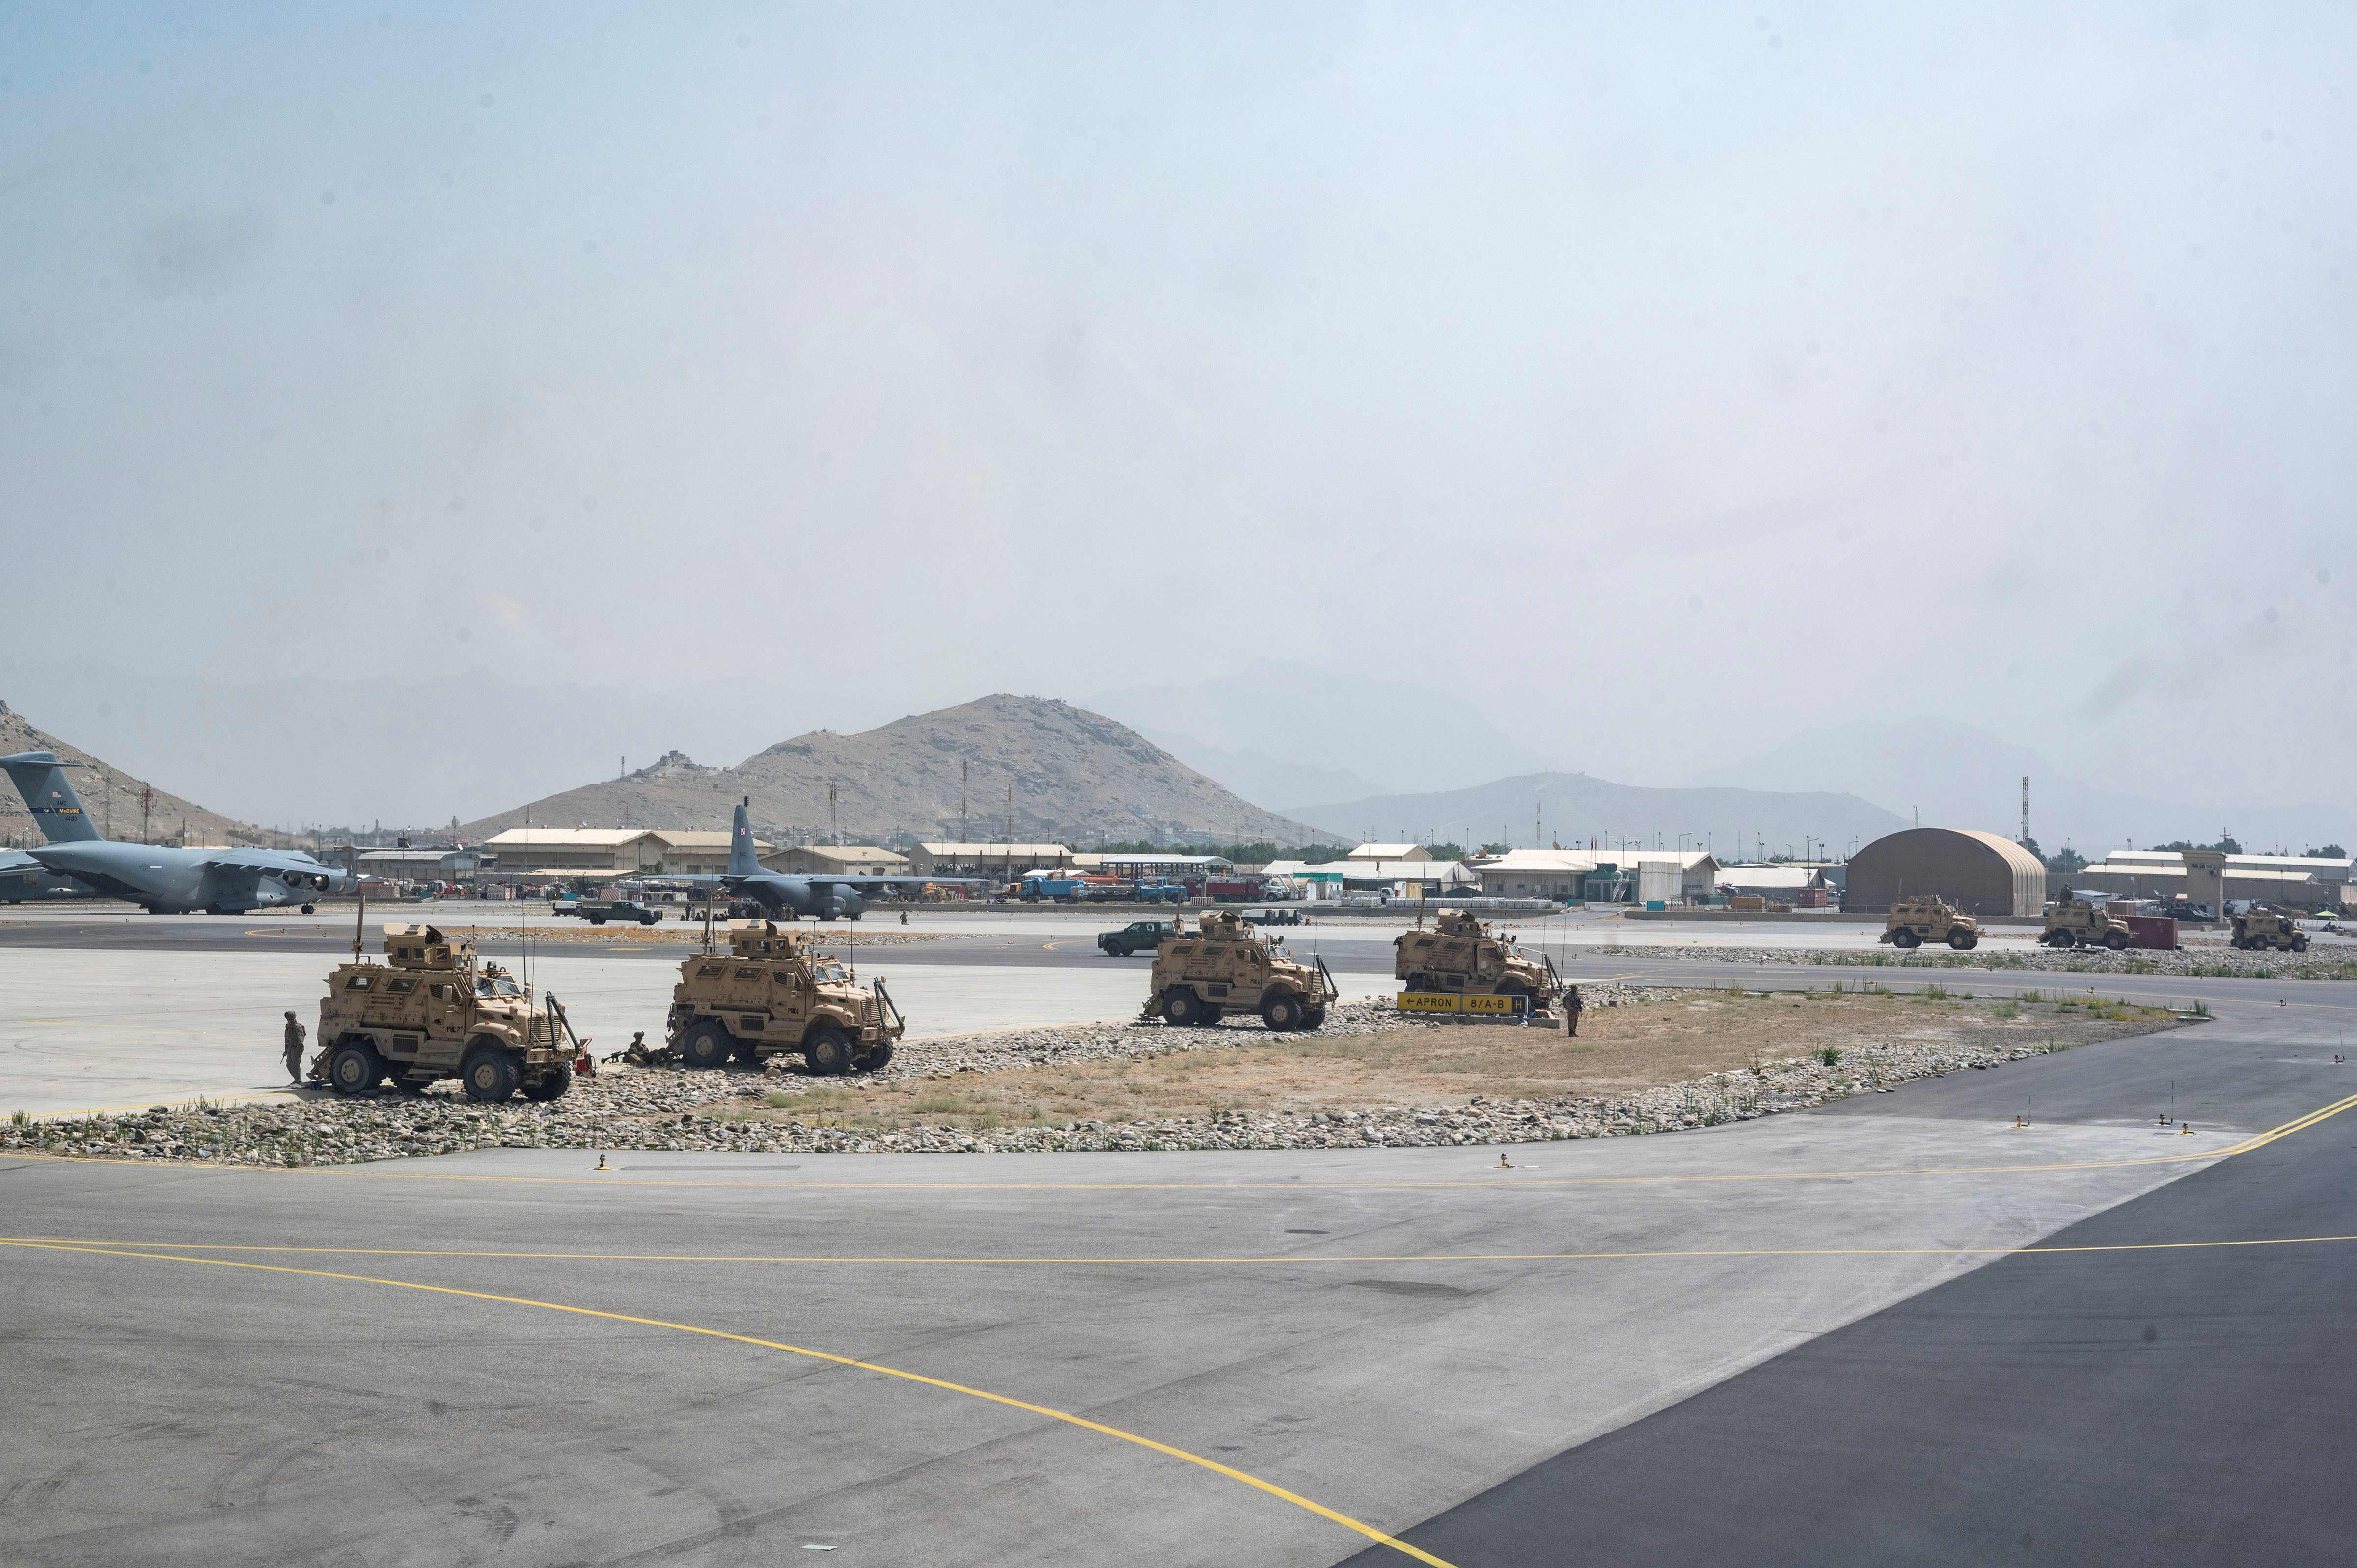 U.S. Army soldiers assigned to the 82nd Airborne Division patrol Hamid Karzai International Airport in Kabul, Afghanistan August 17, 2021. U.S. Air Force/Senior Airman Taylor Crul/Handout via REUTERS